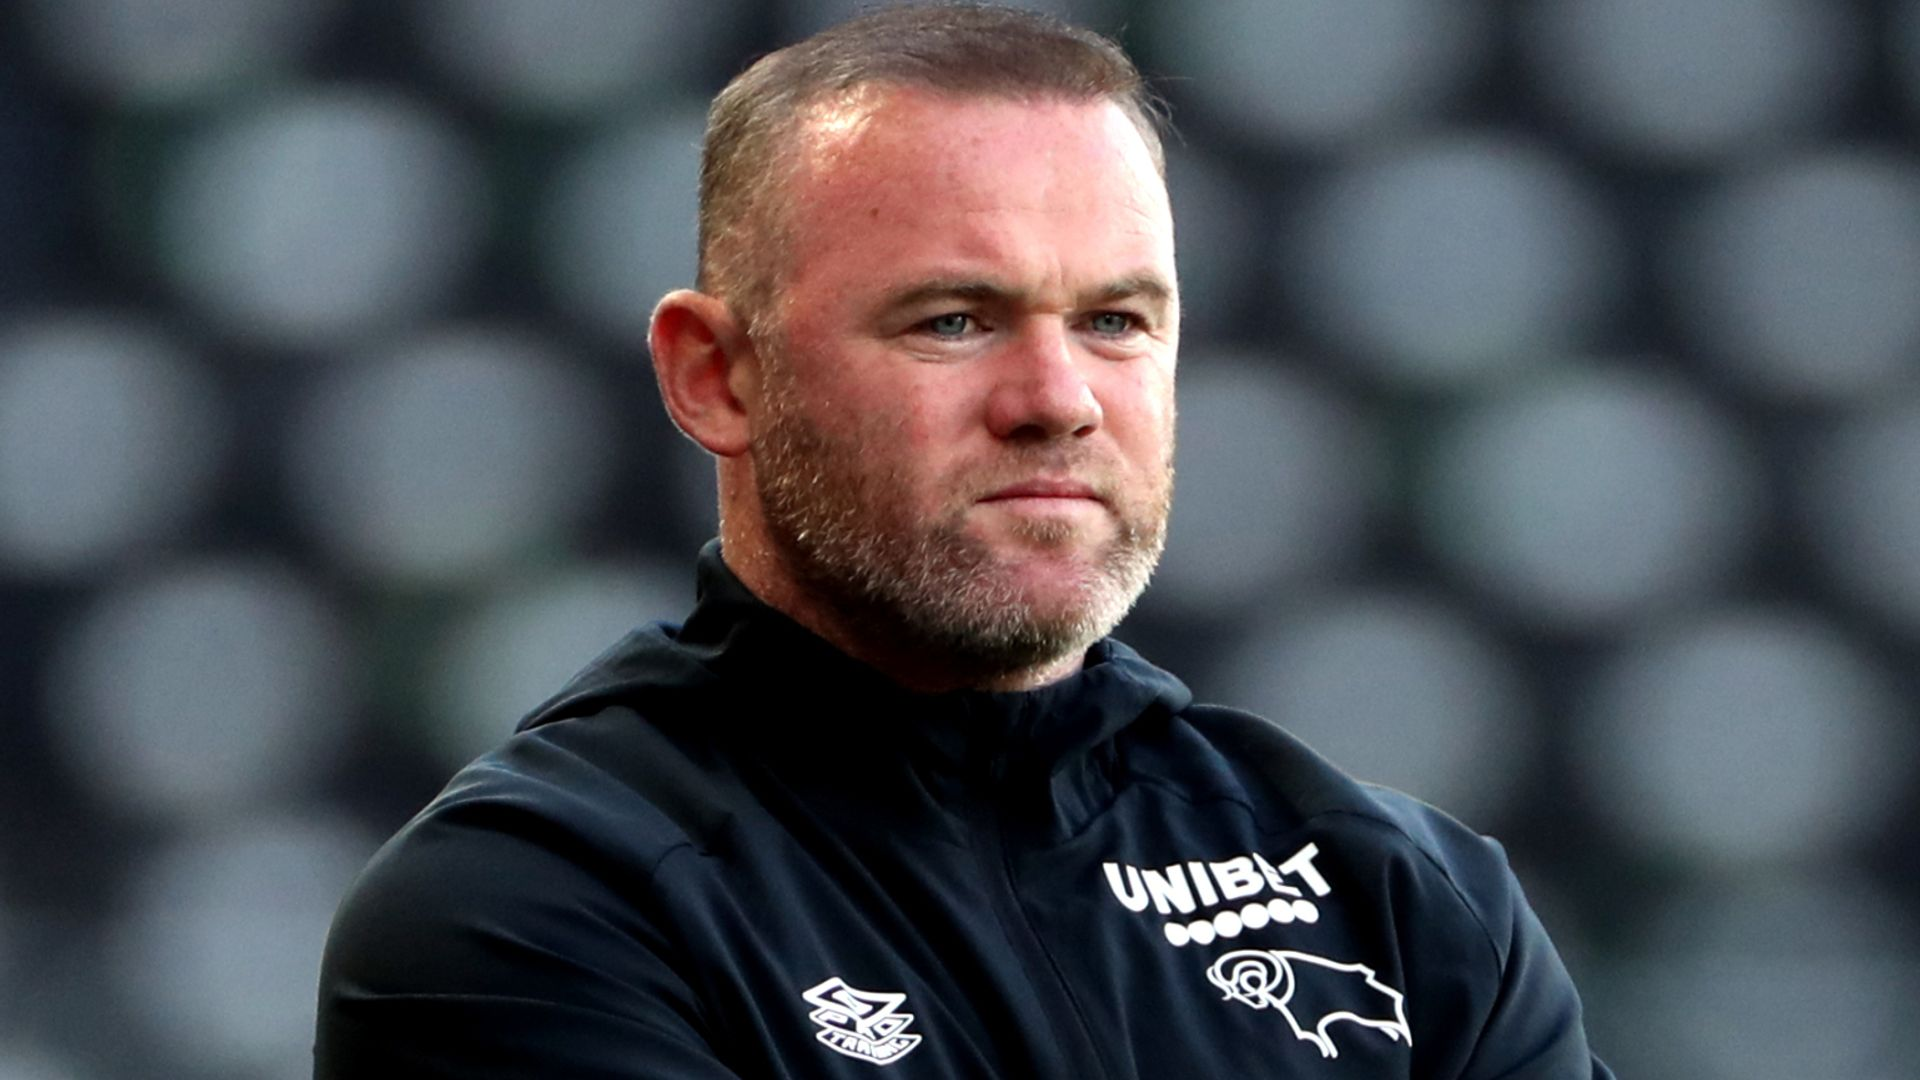 Rooney apologises to family over online images